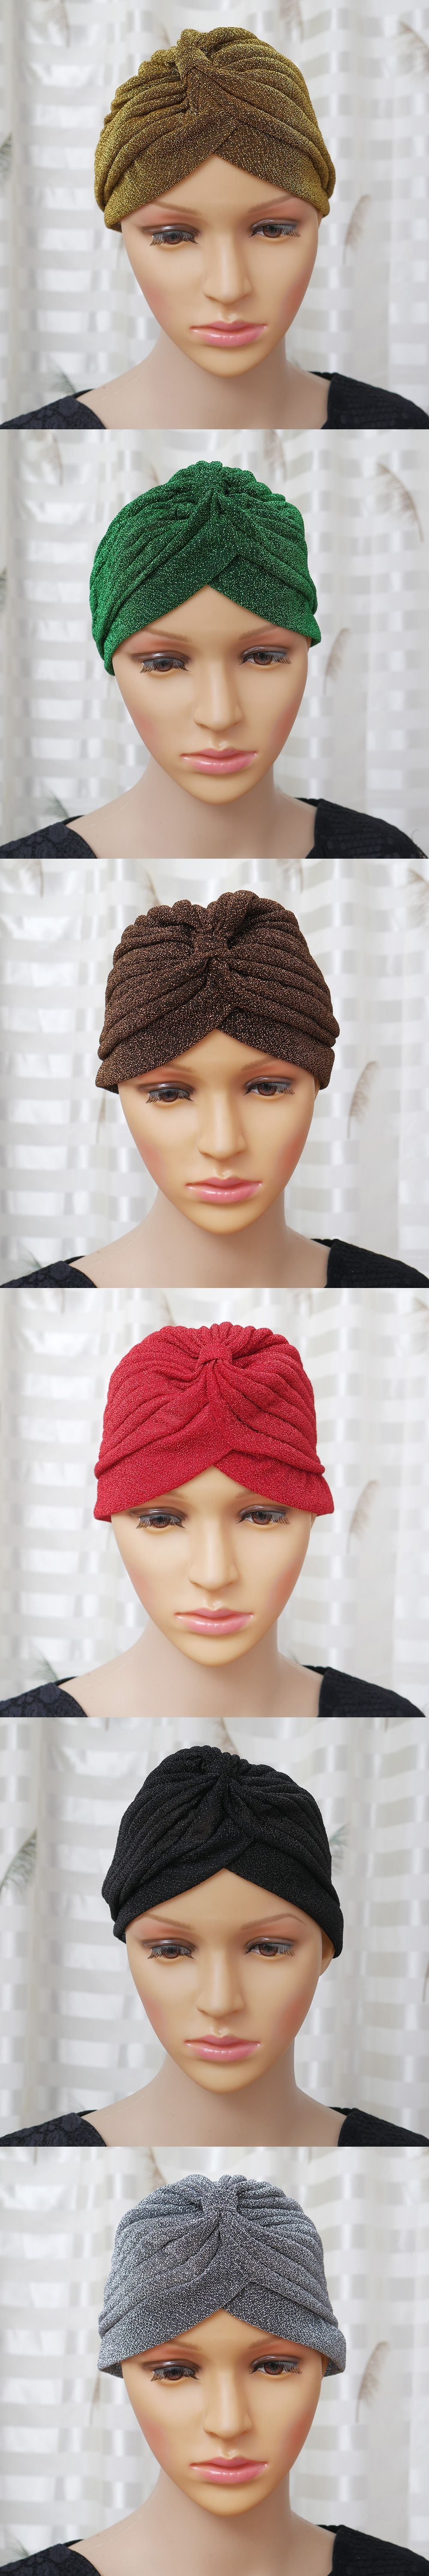 997f59a2333 1x Men Women Trendy Stretchable Soft Indian Style Turban Hat Head Wrap Band  Cap